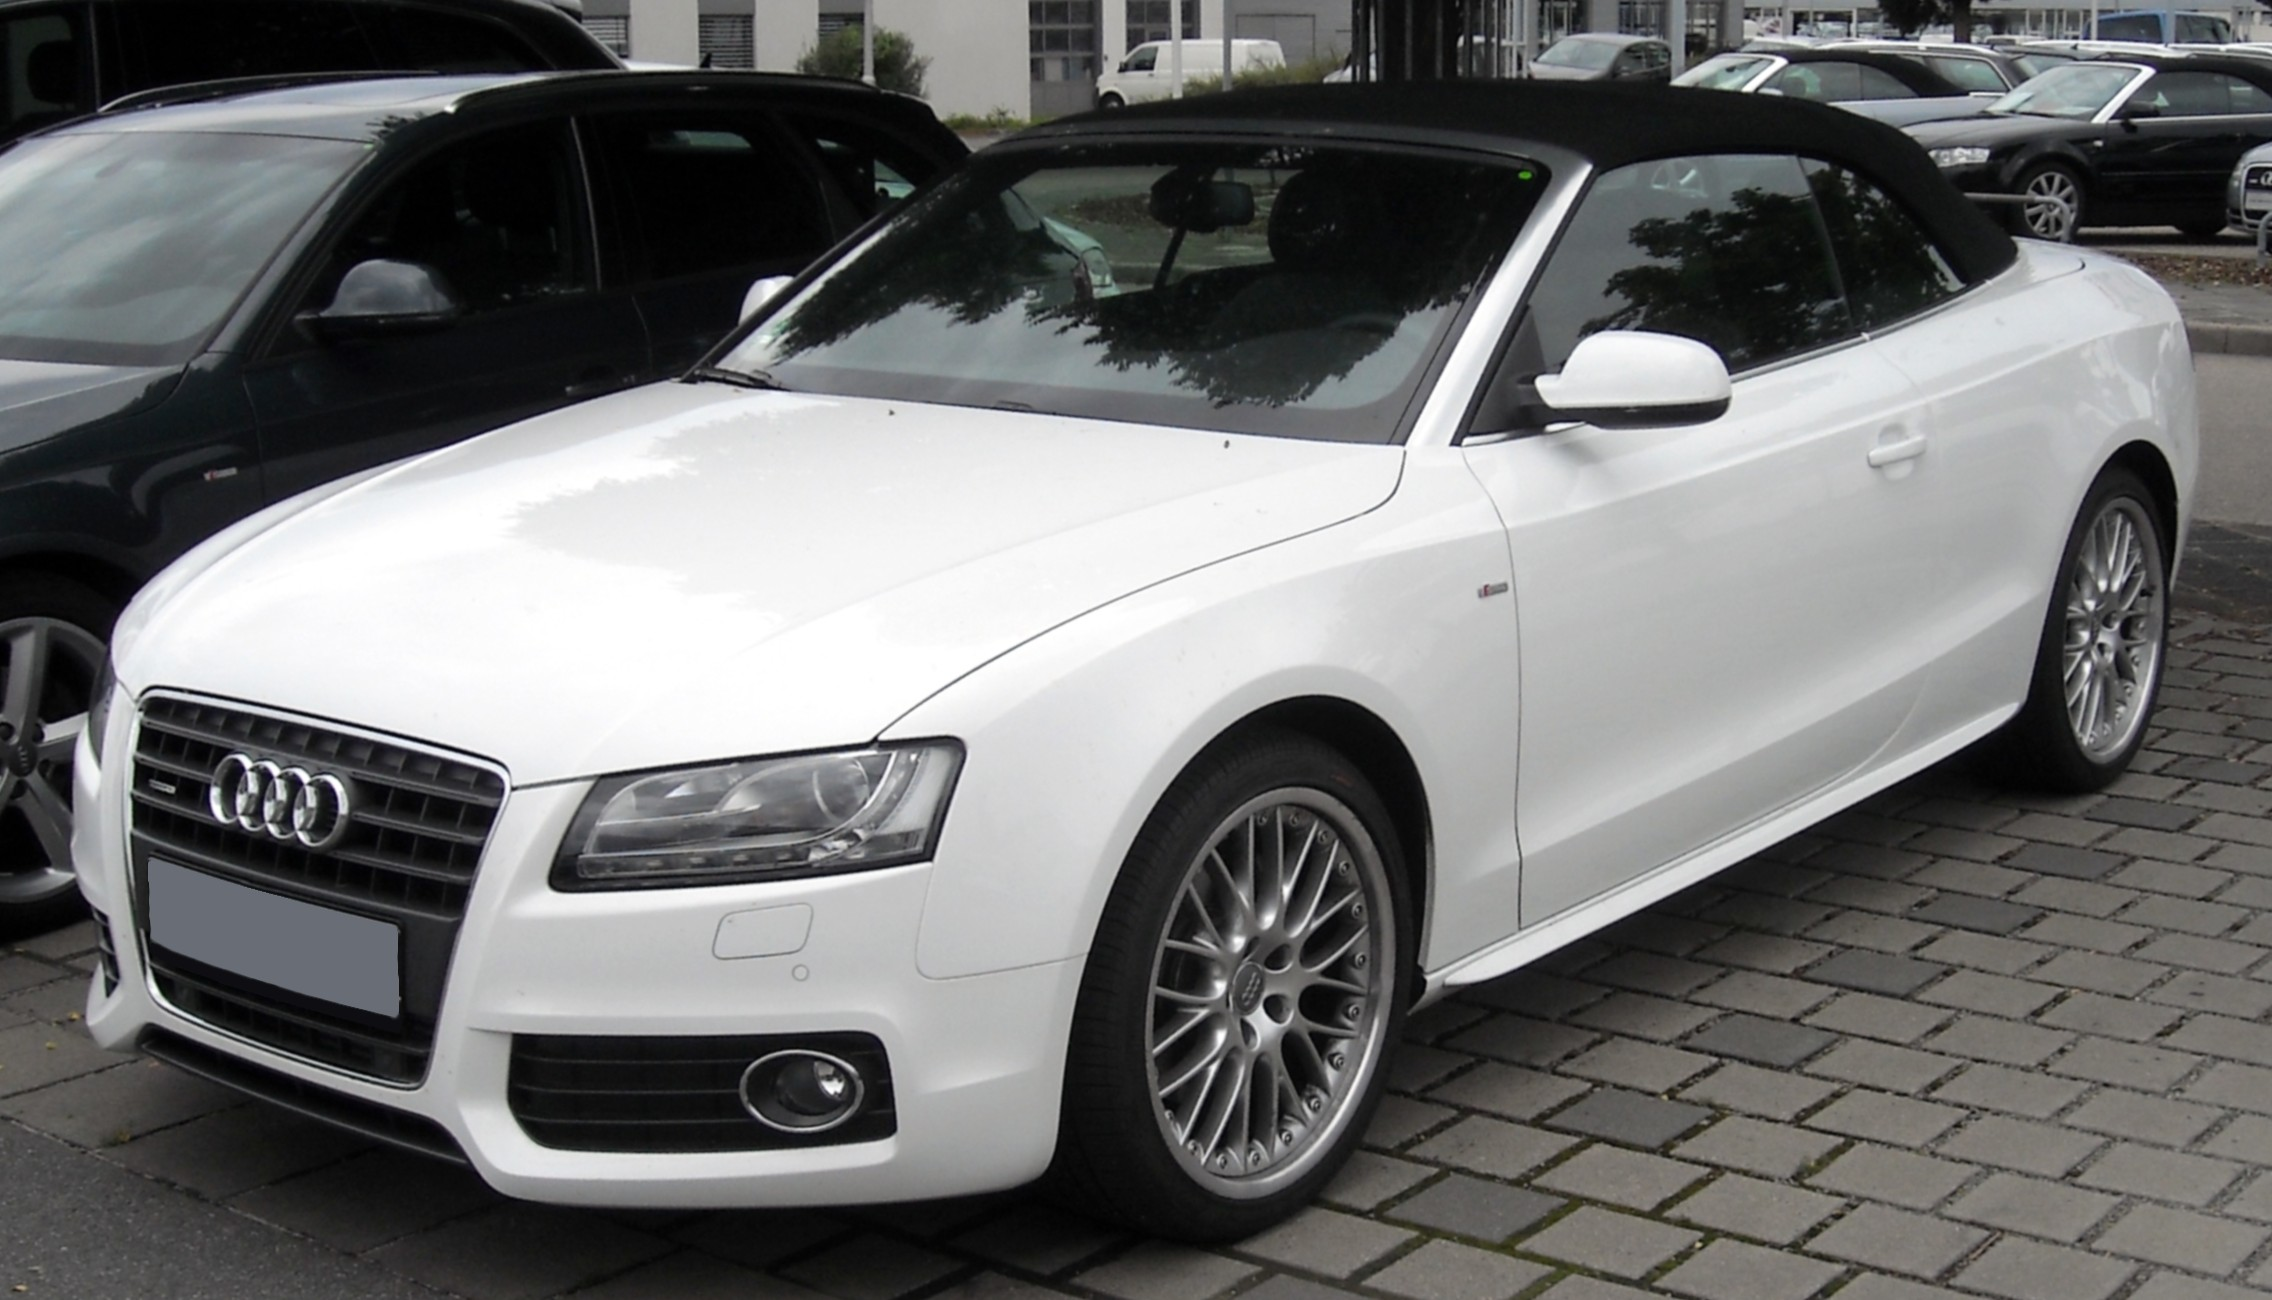 file audi a5 cabrio front wikimedia commons. Black Bedroom Furniture Sets. Home Design Ideas